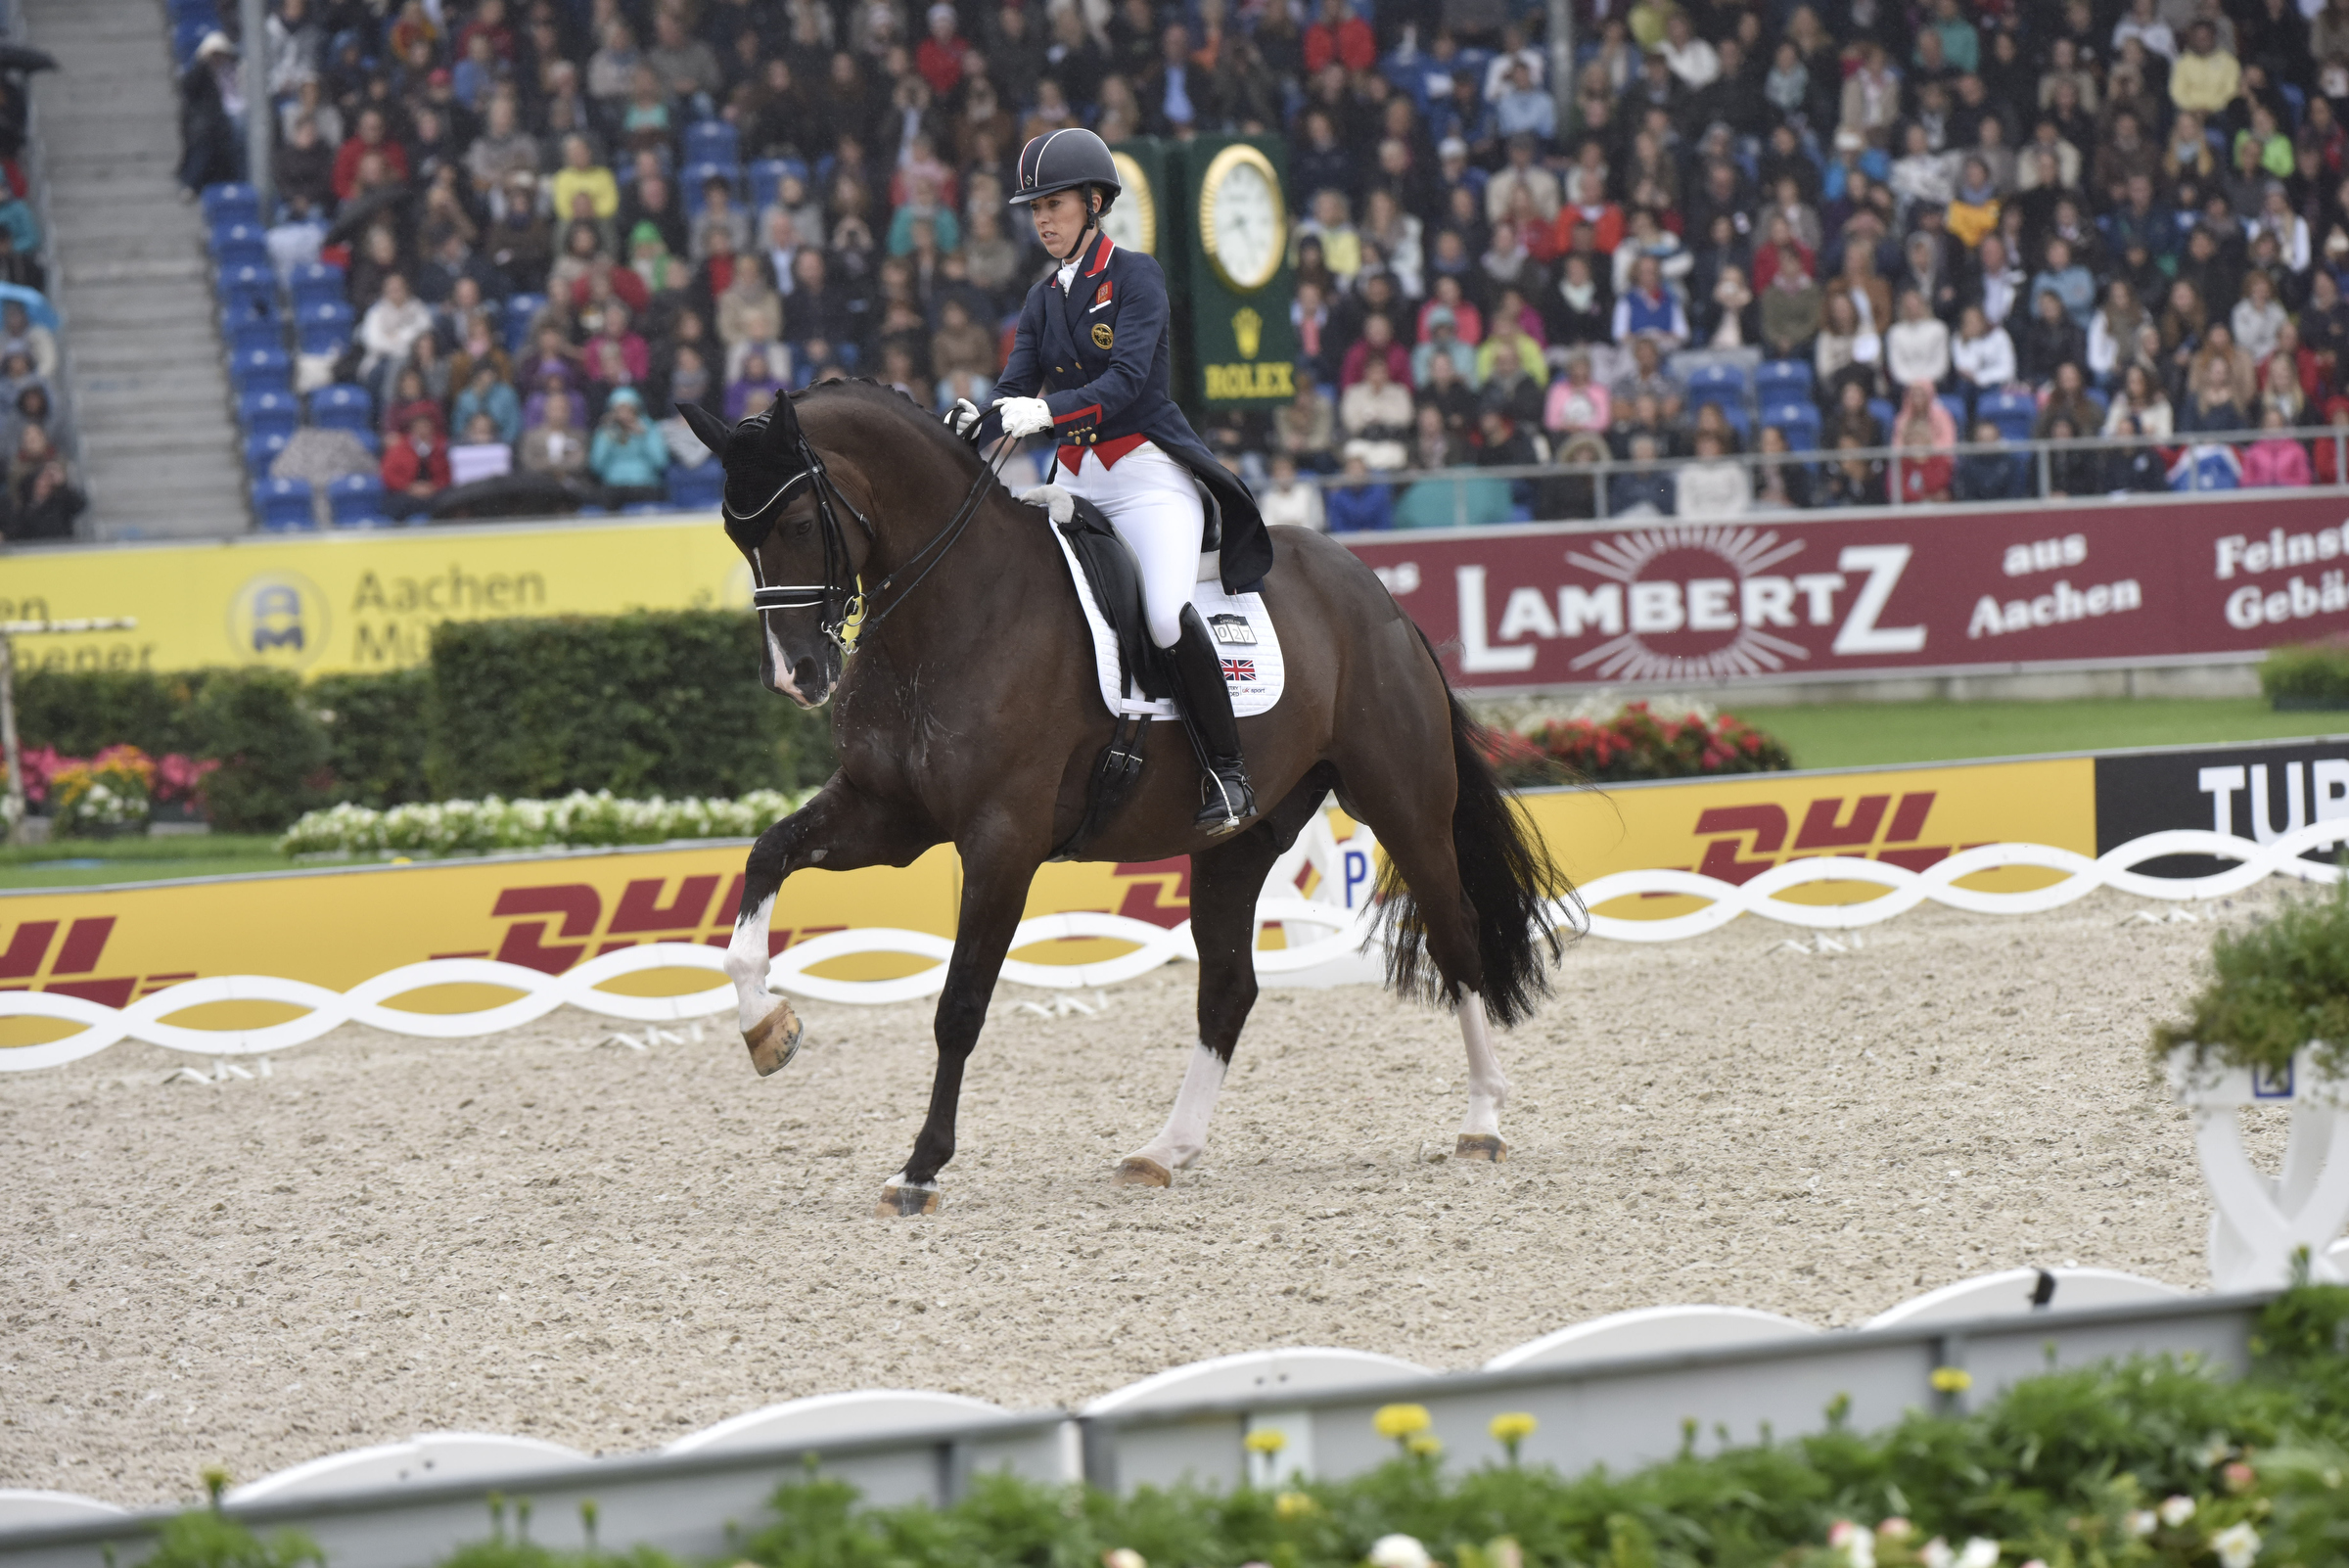 Horse Times Egypt: Equestrian Magazine :Event News :CHARLOTTE DUJARDIN AND VALEGRO REMAIN DOUBLE EUROPEAN CHAMPIONS  AFTER WINNING GOLD IN THE FREESTYLE AT THE 2015 FEI EUROPEAN CHAMPIONSHIPS